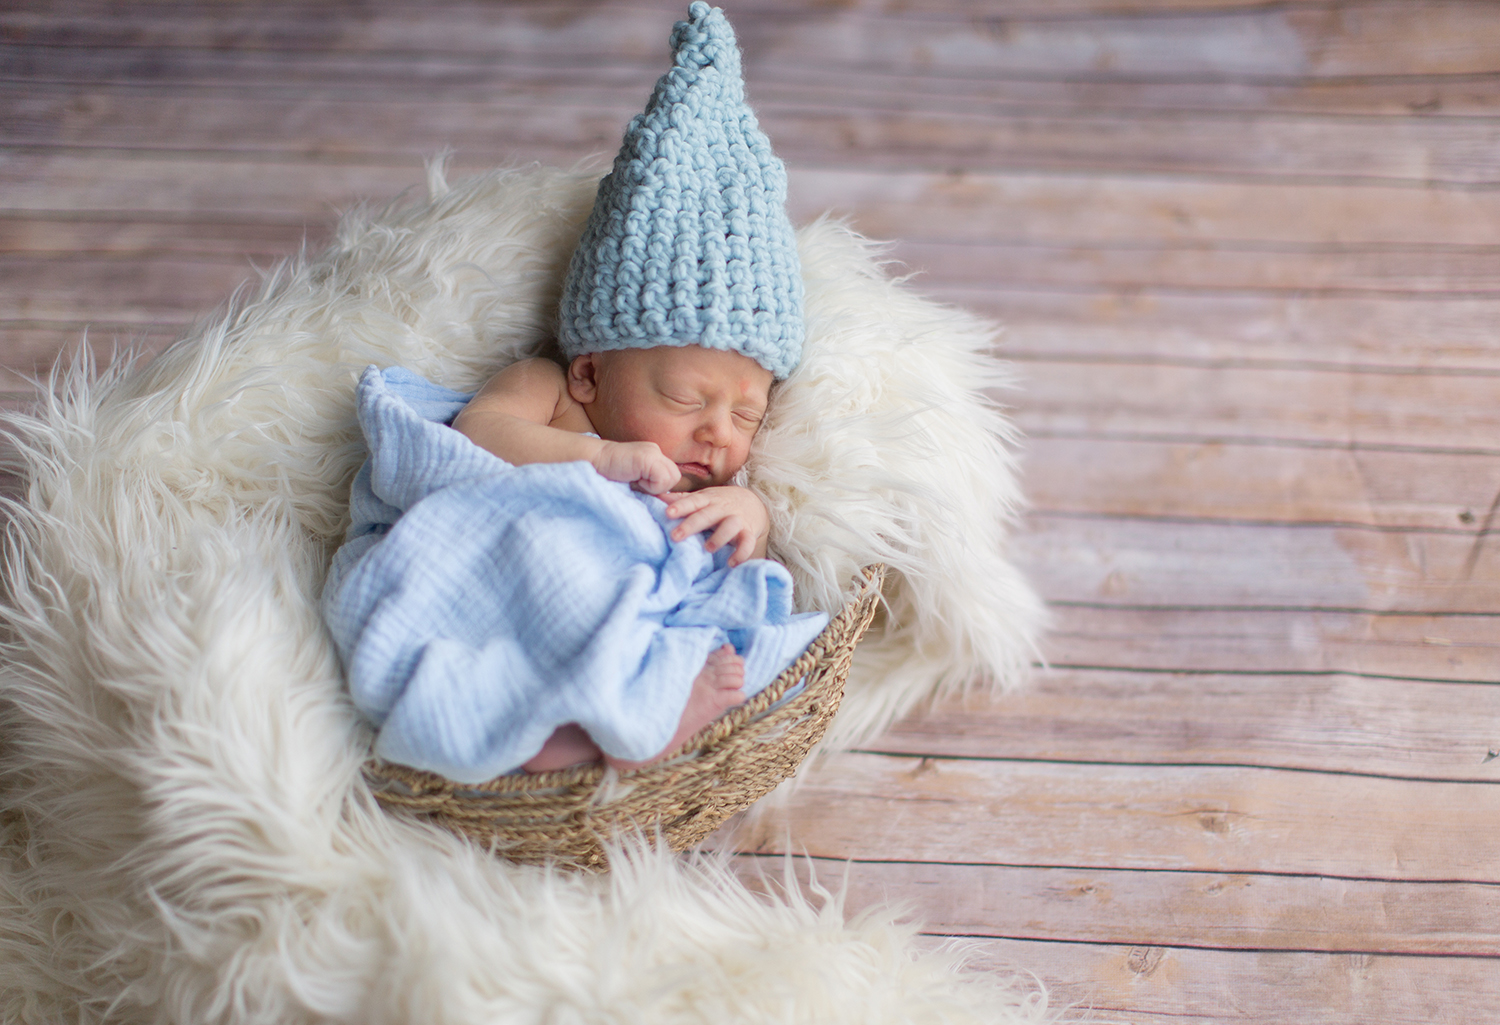 Dena_Rooney_newborn_photographer_0080.jpg